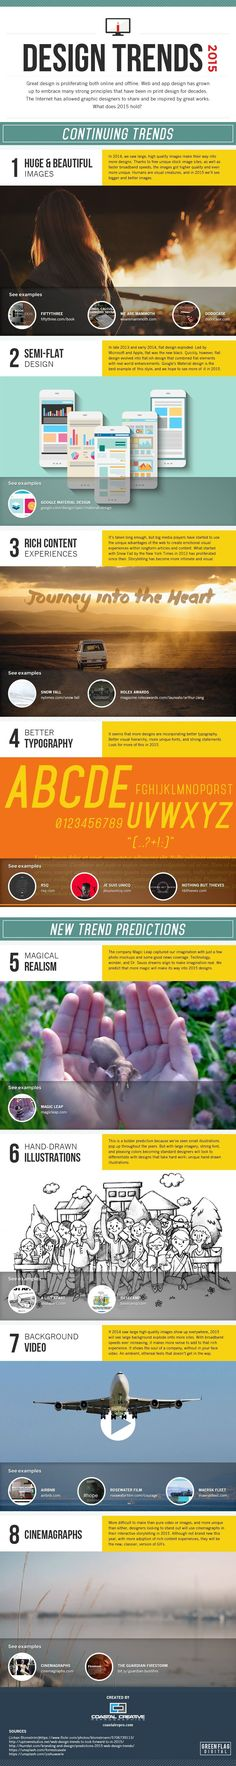 8 Web #Design Trends 2015 - #Infographic